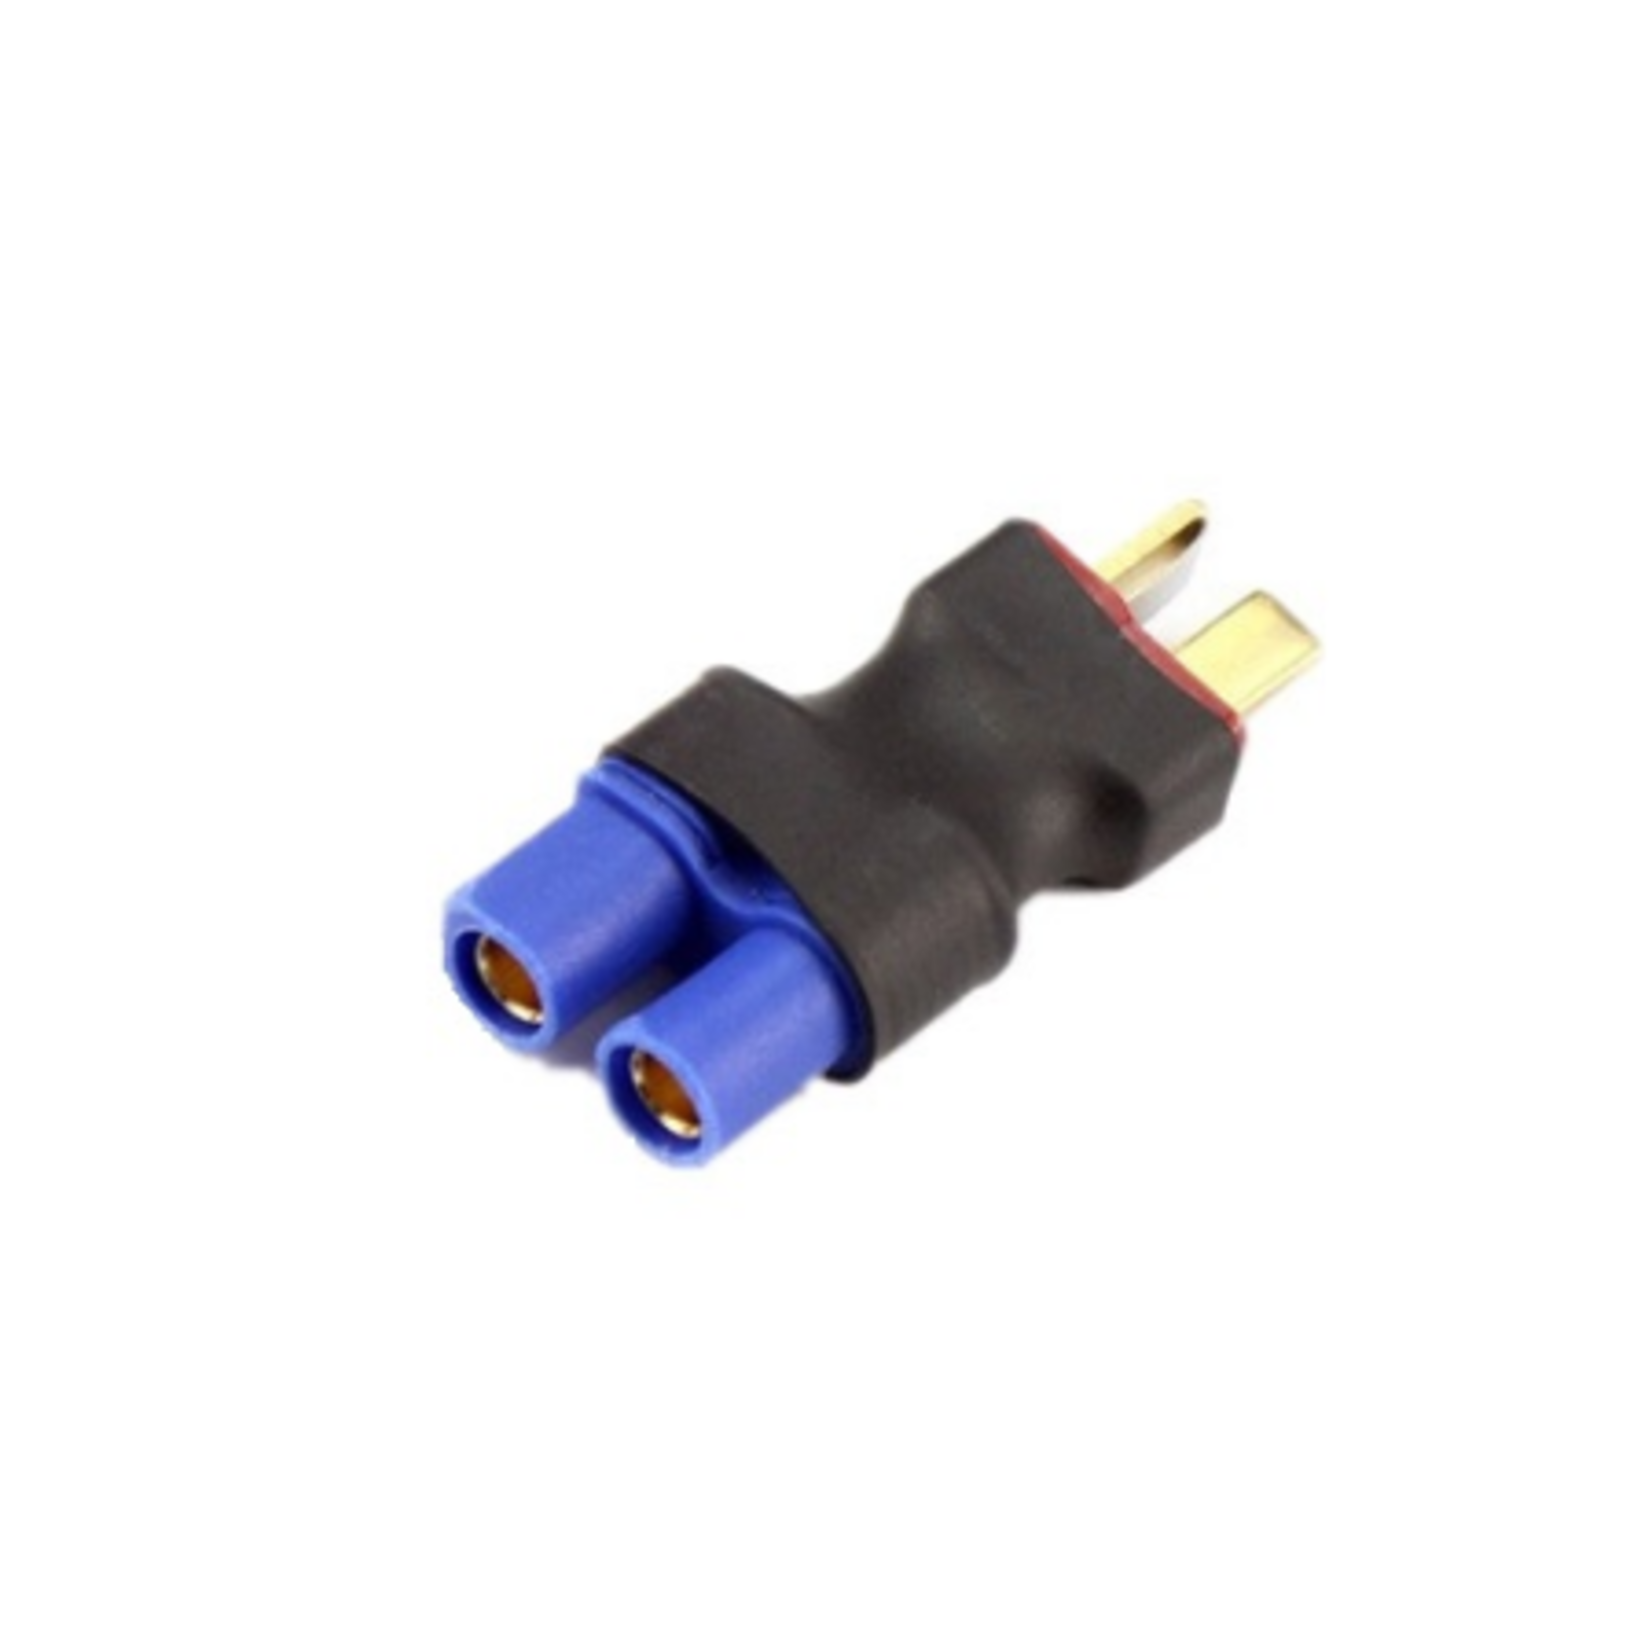 Hobby Details DTC27012 Deans Male to EC3 Female Adapter